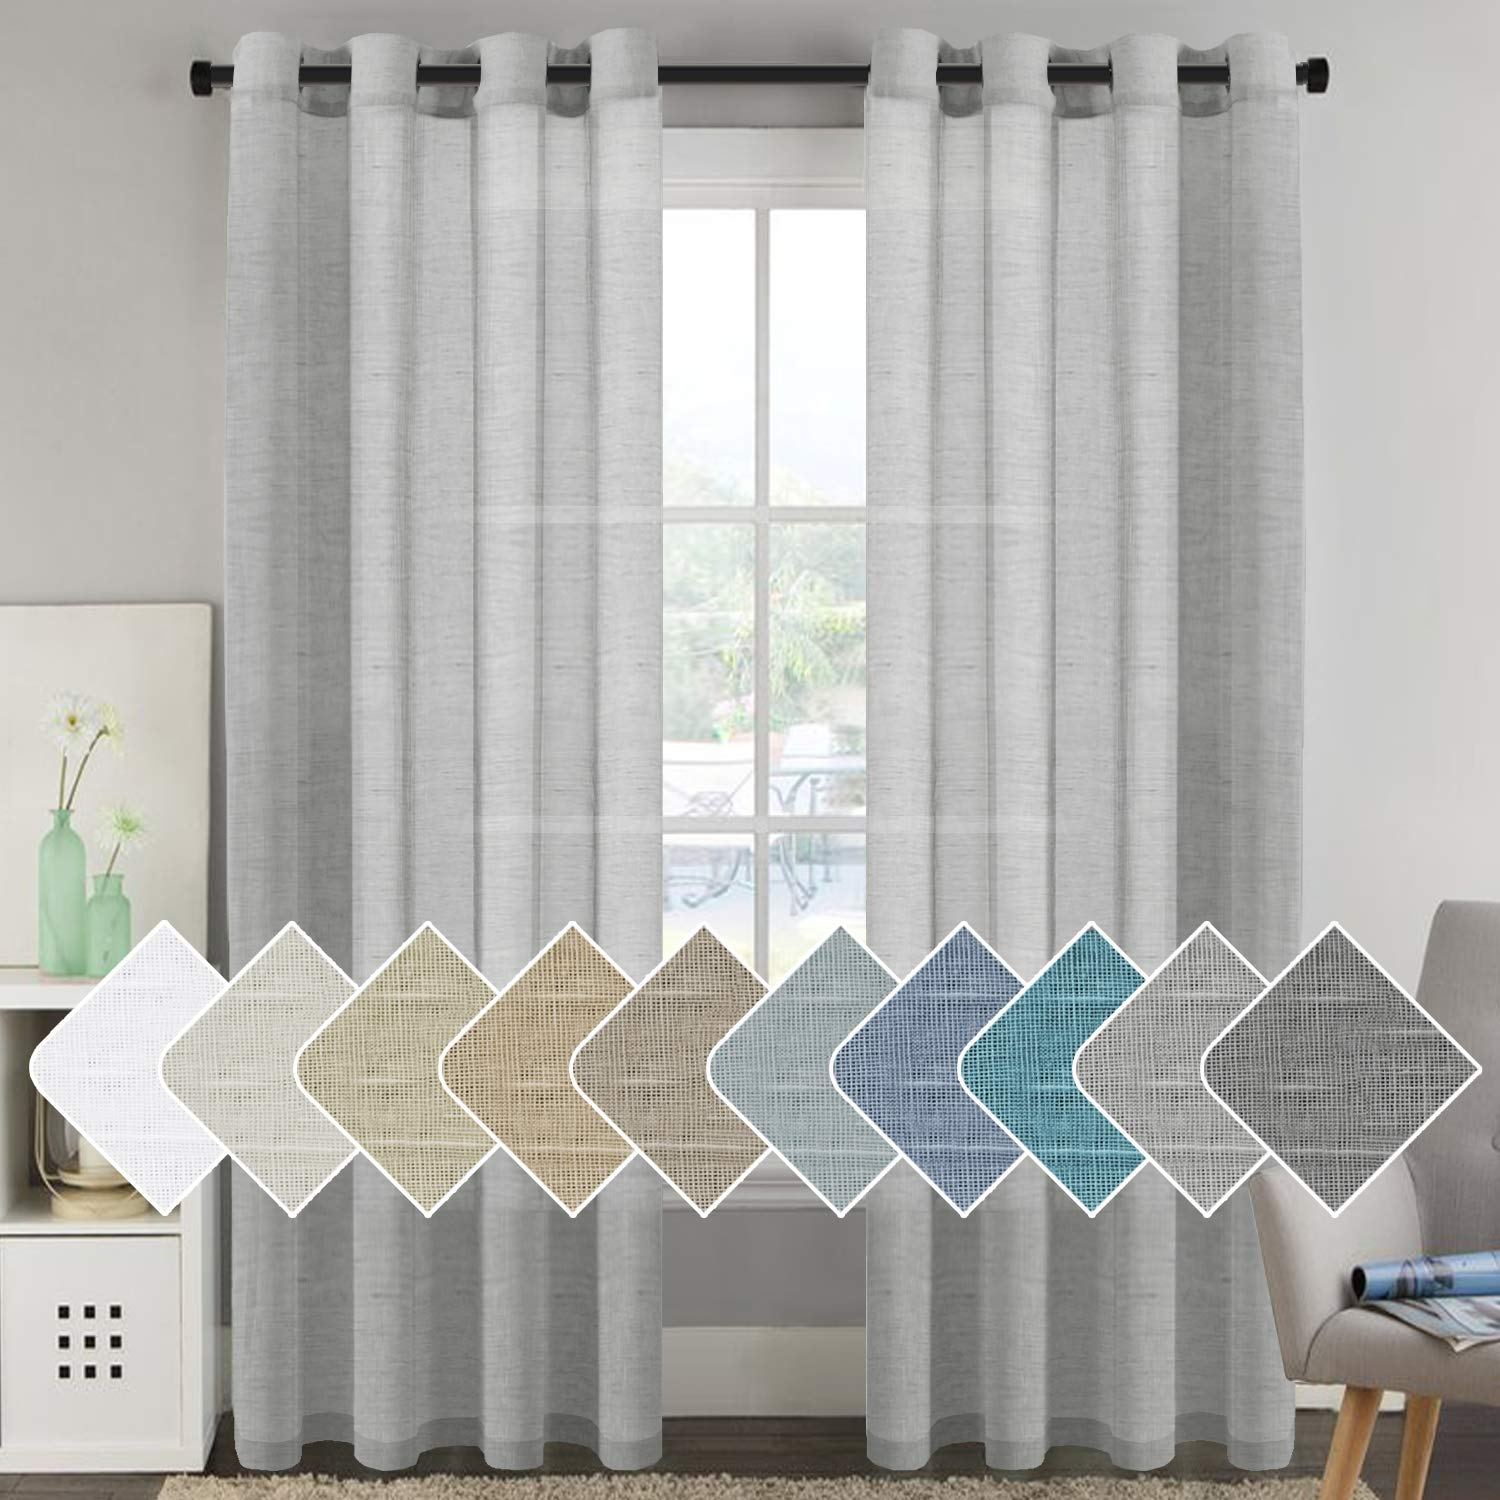 H.VERSAILTEX Privacy Protection Home Fashion Natural Linen Rich Quality Curtain Sheers Multi Size 52x96 - Inch/Nickel Grommet Top Linen Curtain Panels Indoor Curtains (Set of 2, Dove Gray)